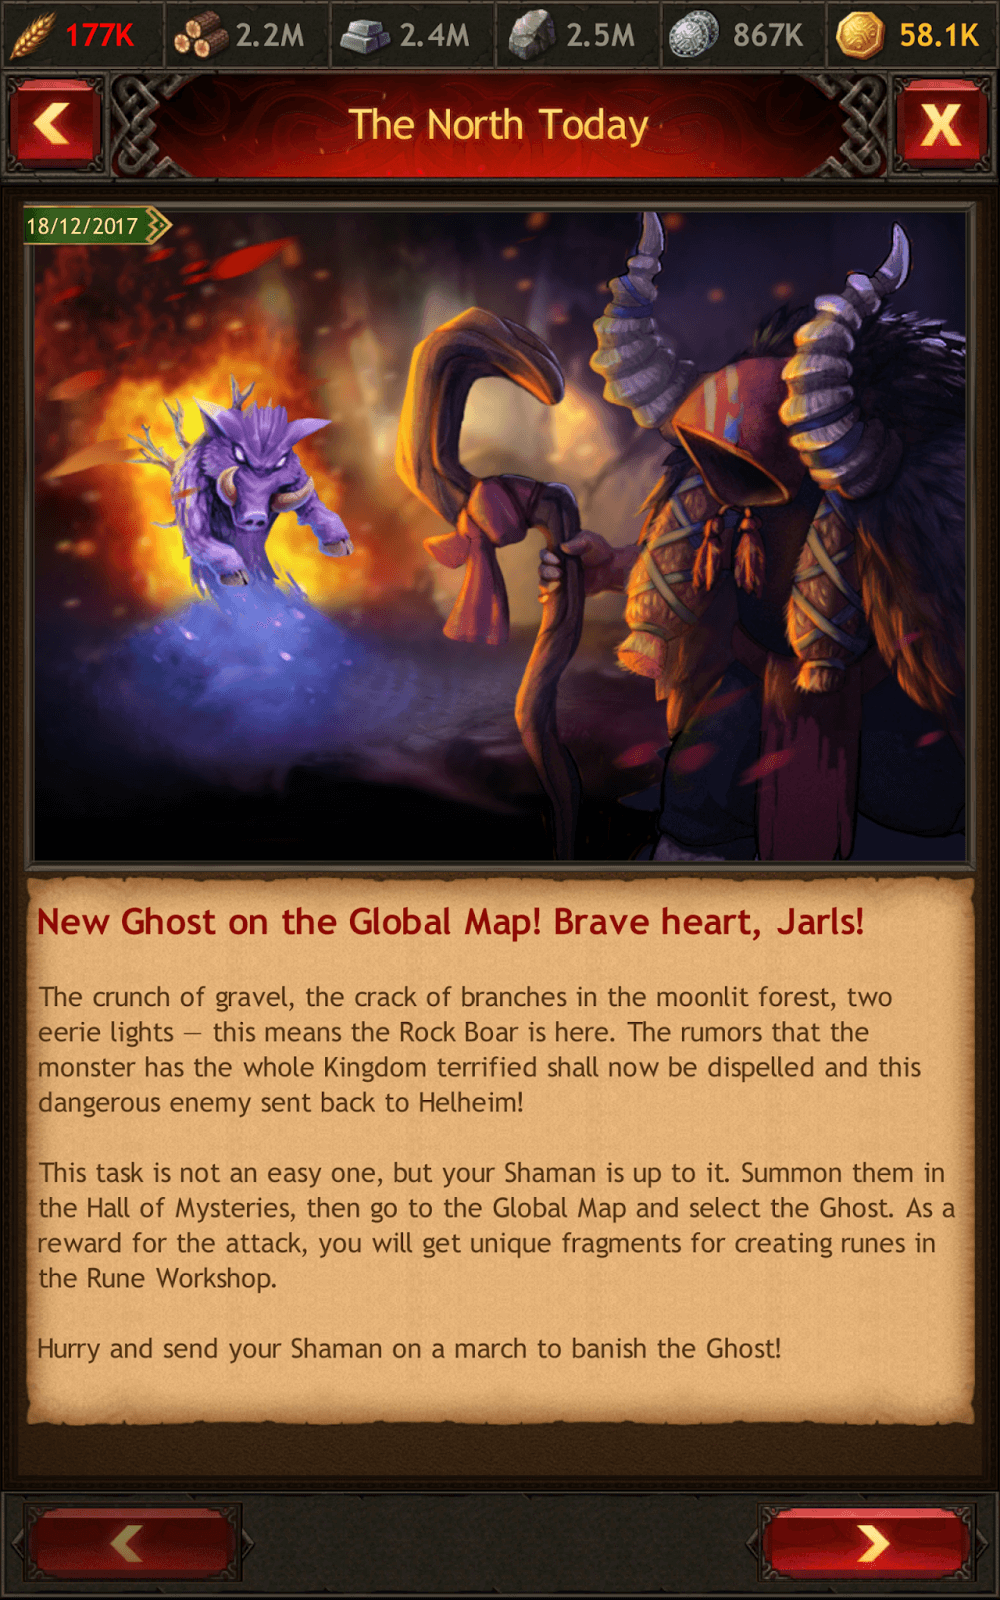 New Ghost Rock Boar